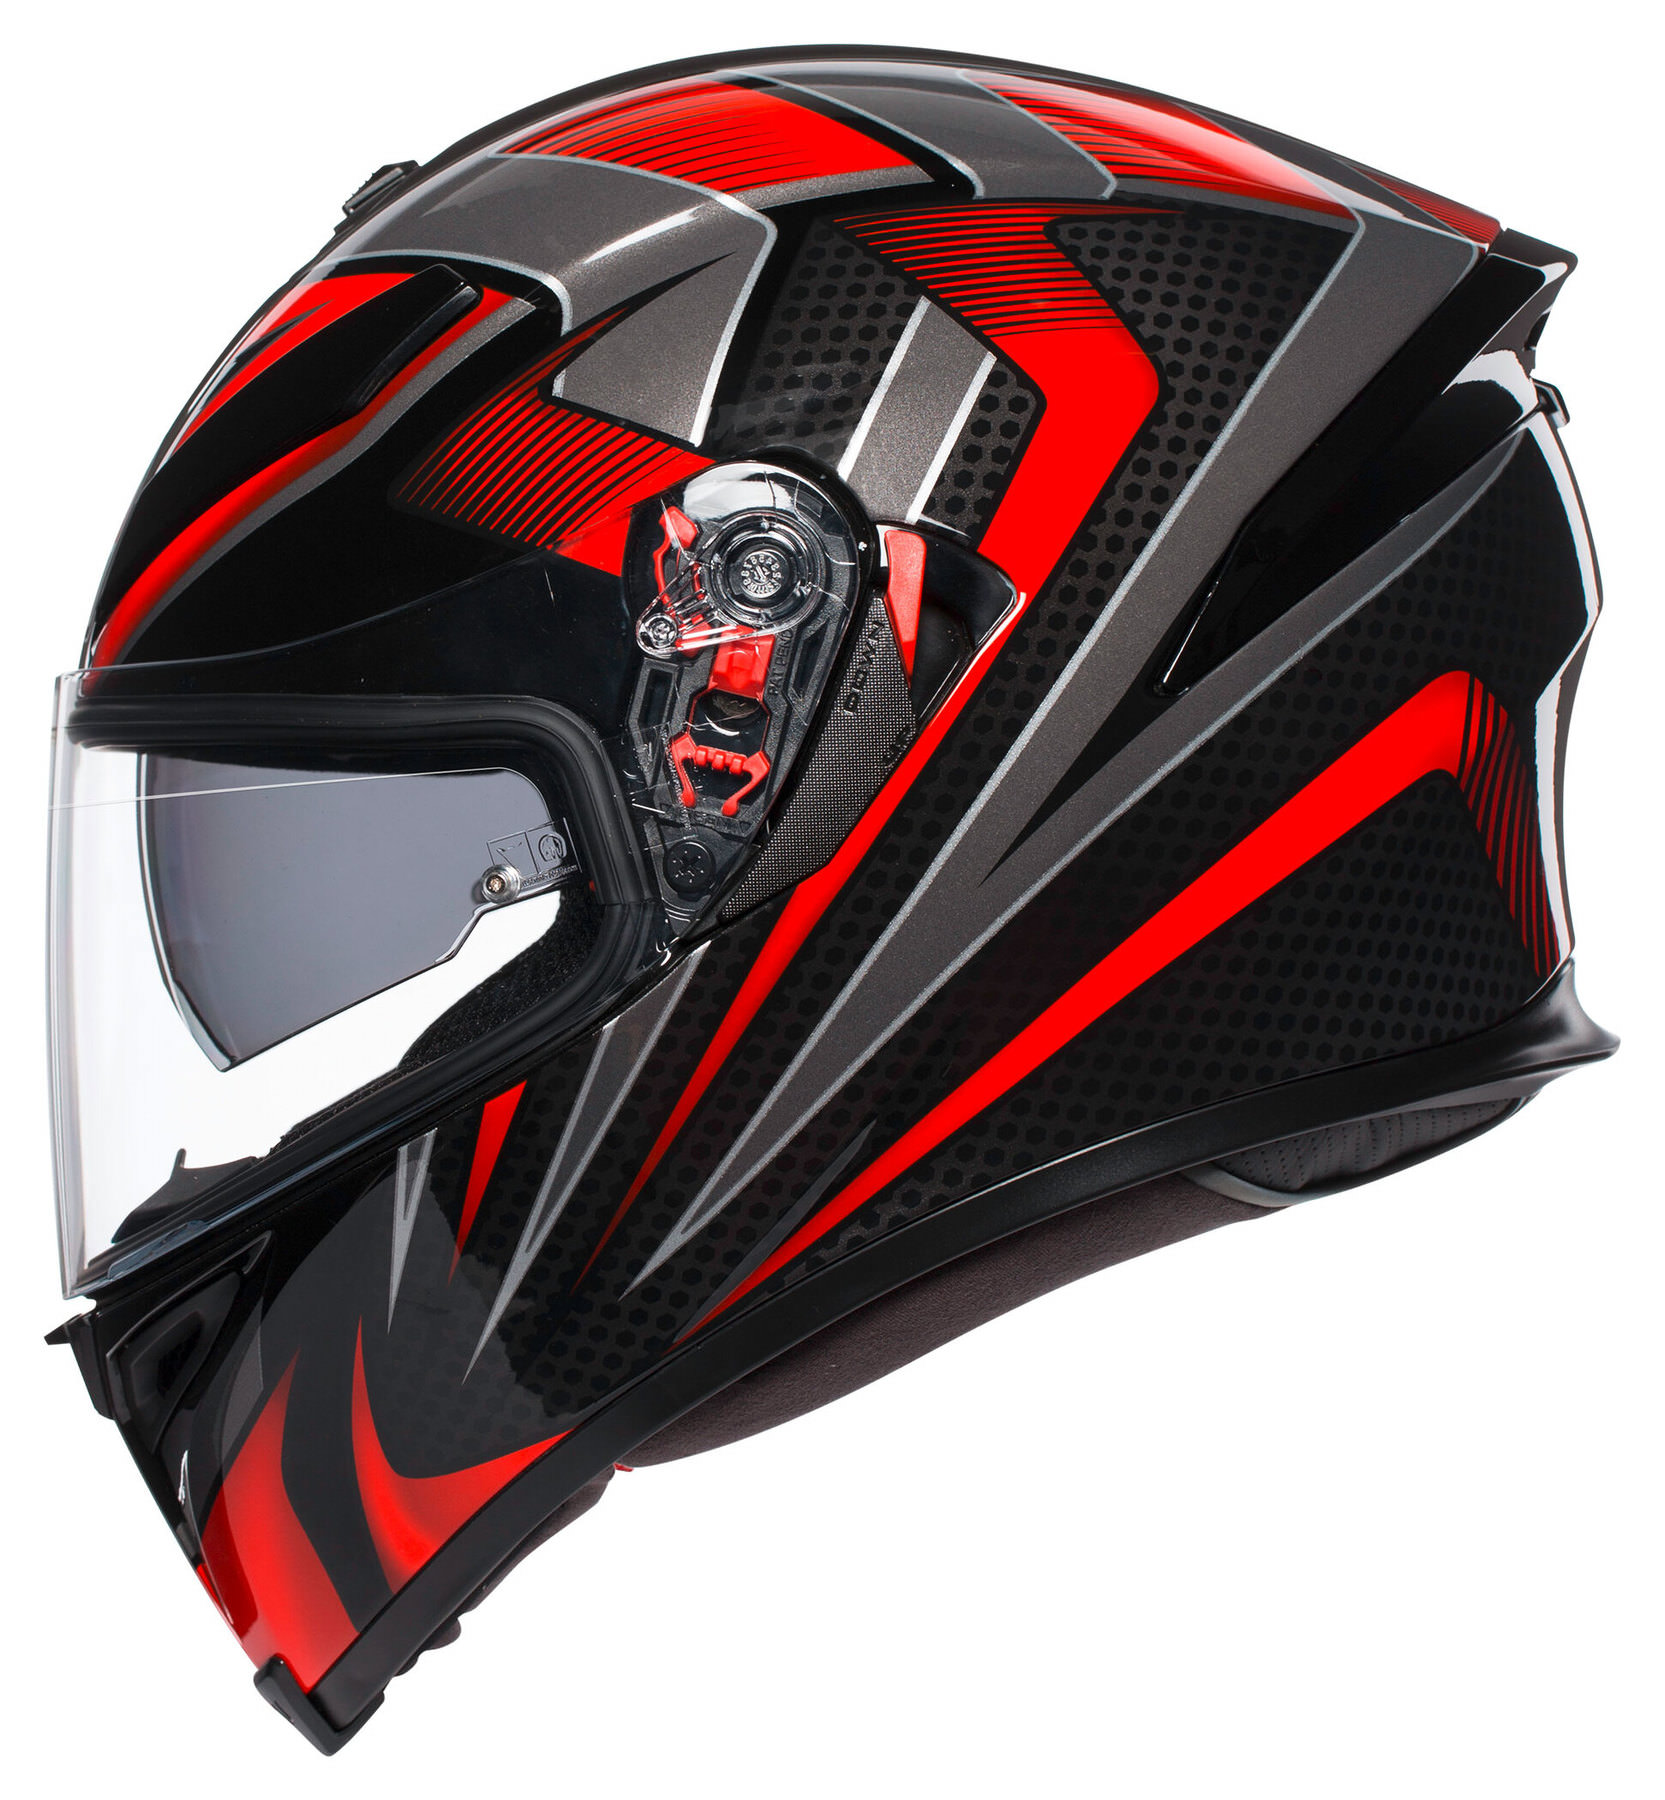 Buy Agv K5 S Hurricane 2 0 Full Face Helmet Louis Motorcycle Clothing And Technology